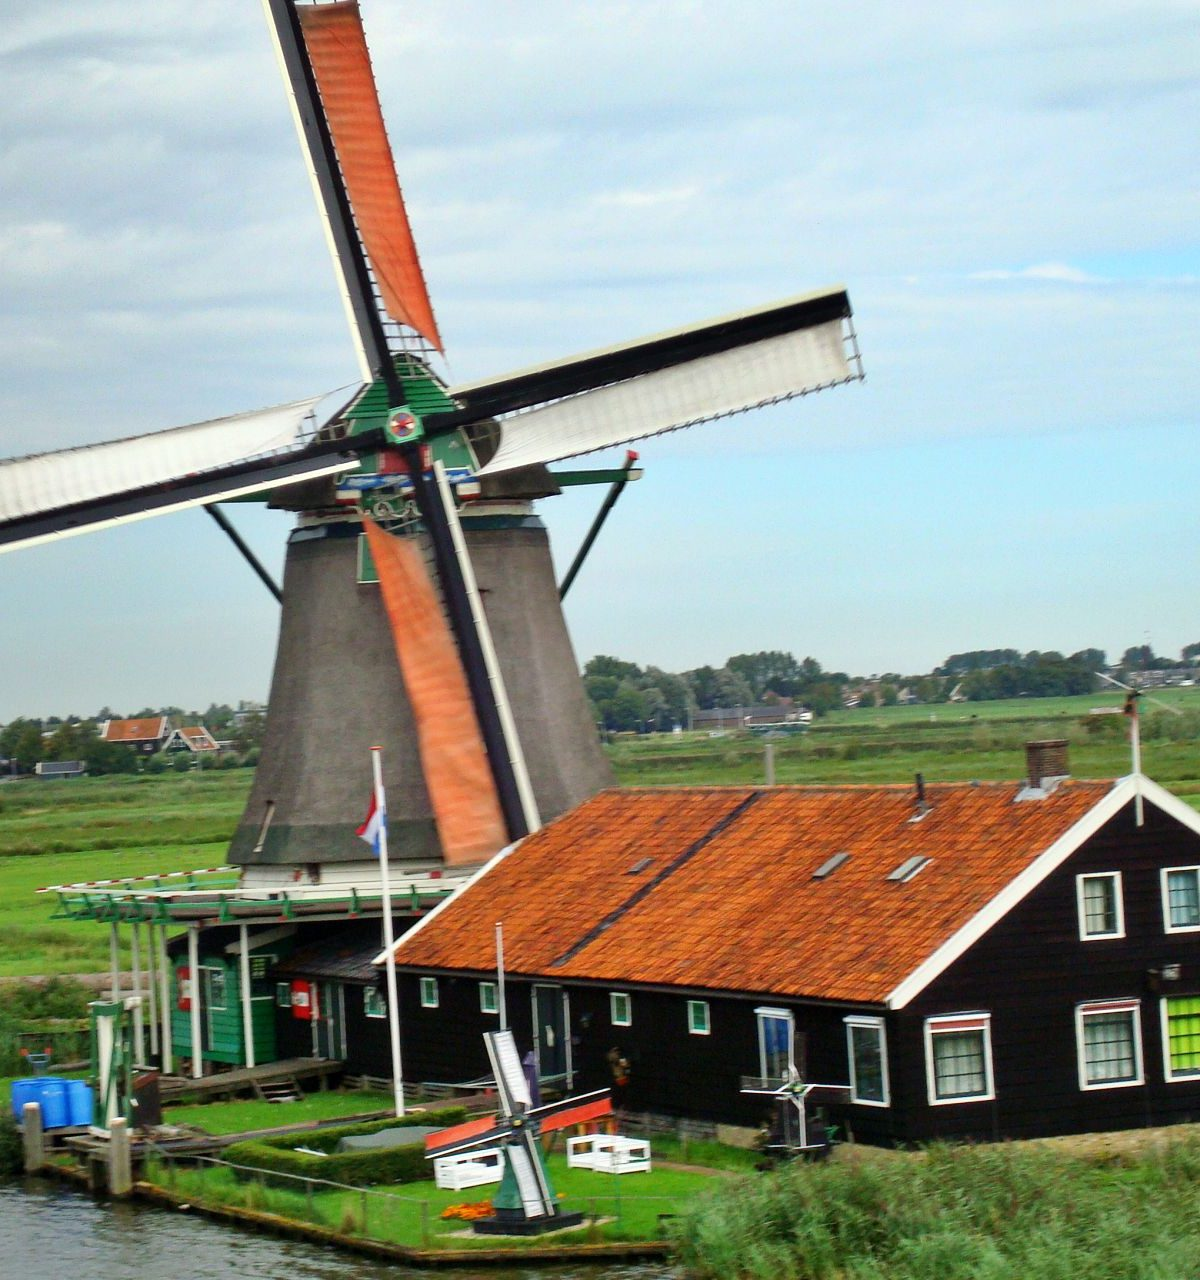 windmolen zaanse schans noord holland hotelb&b lanormande-25